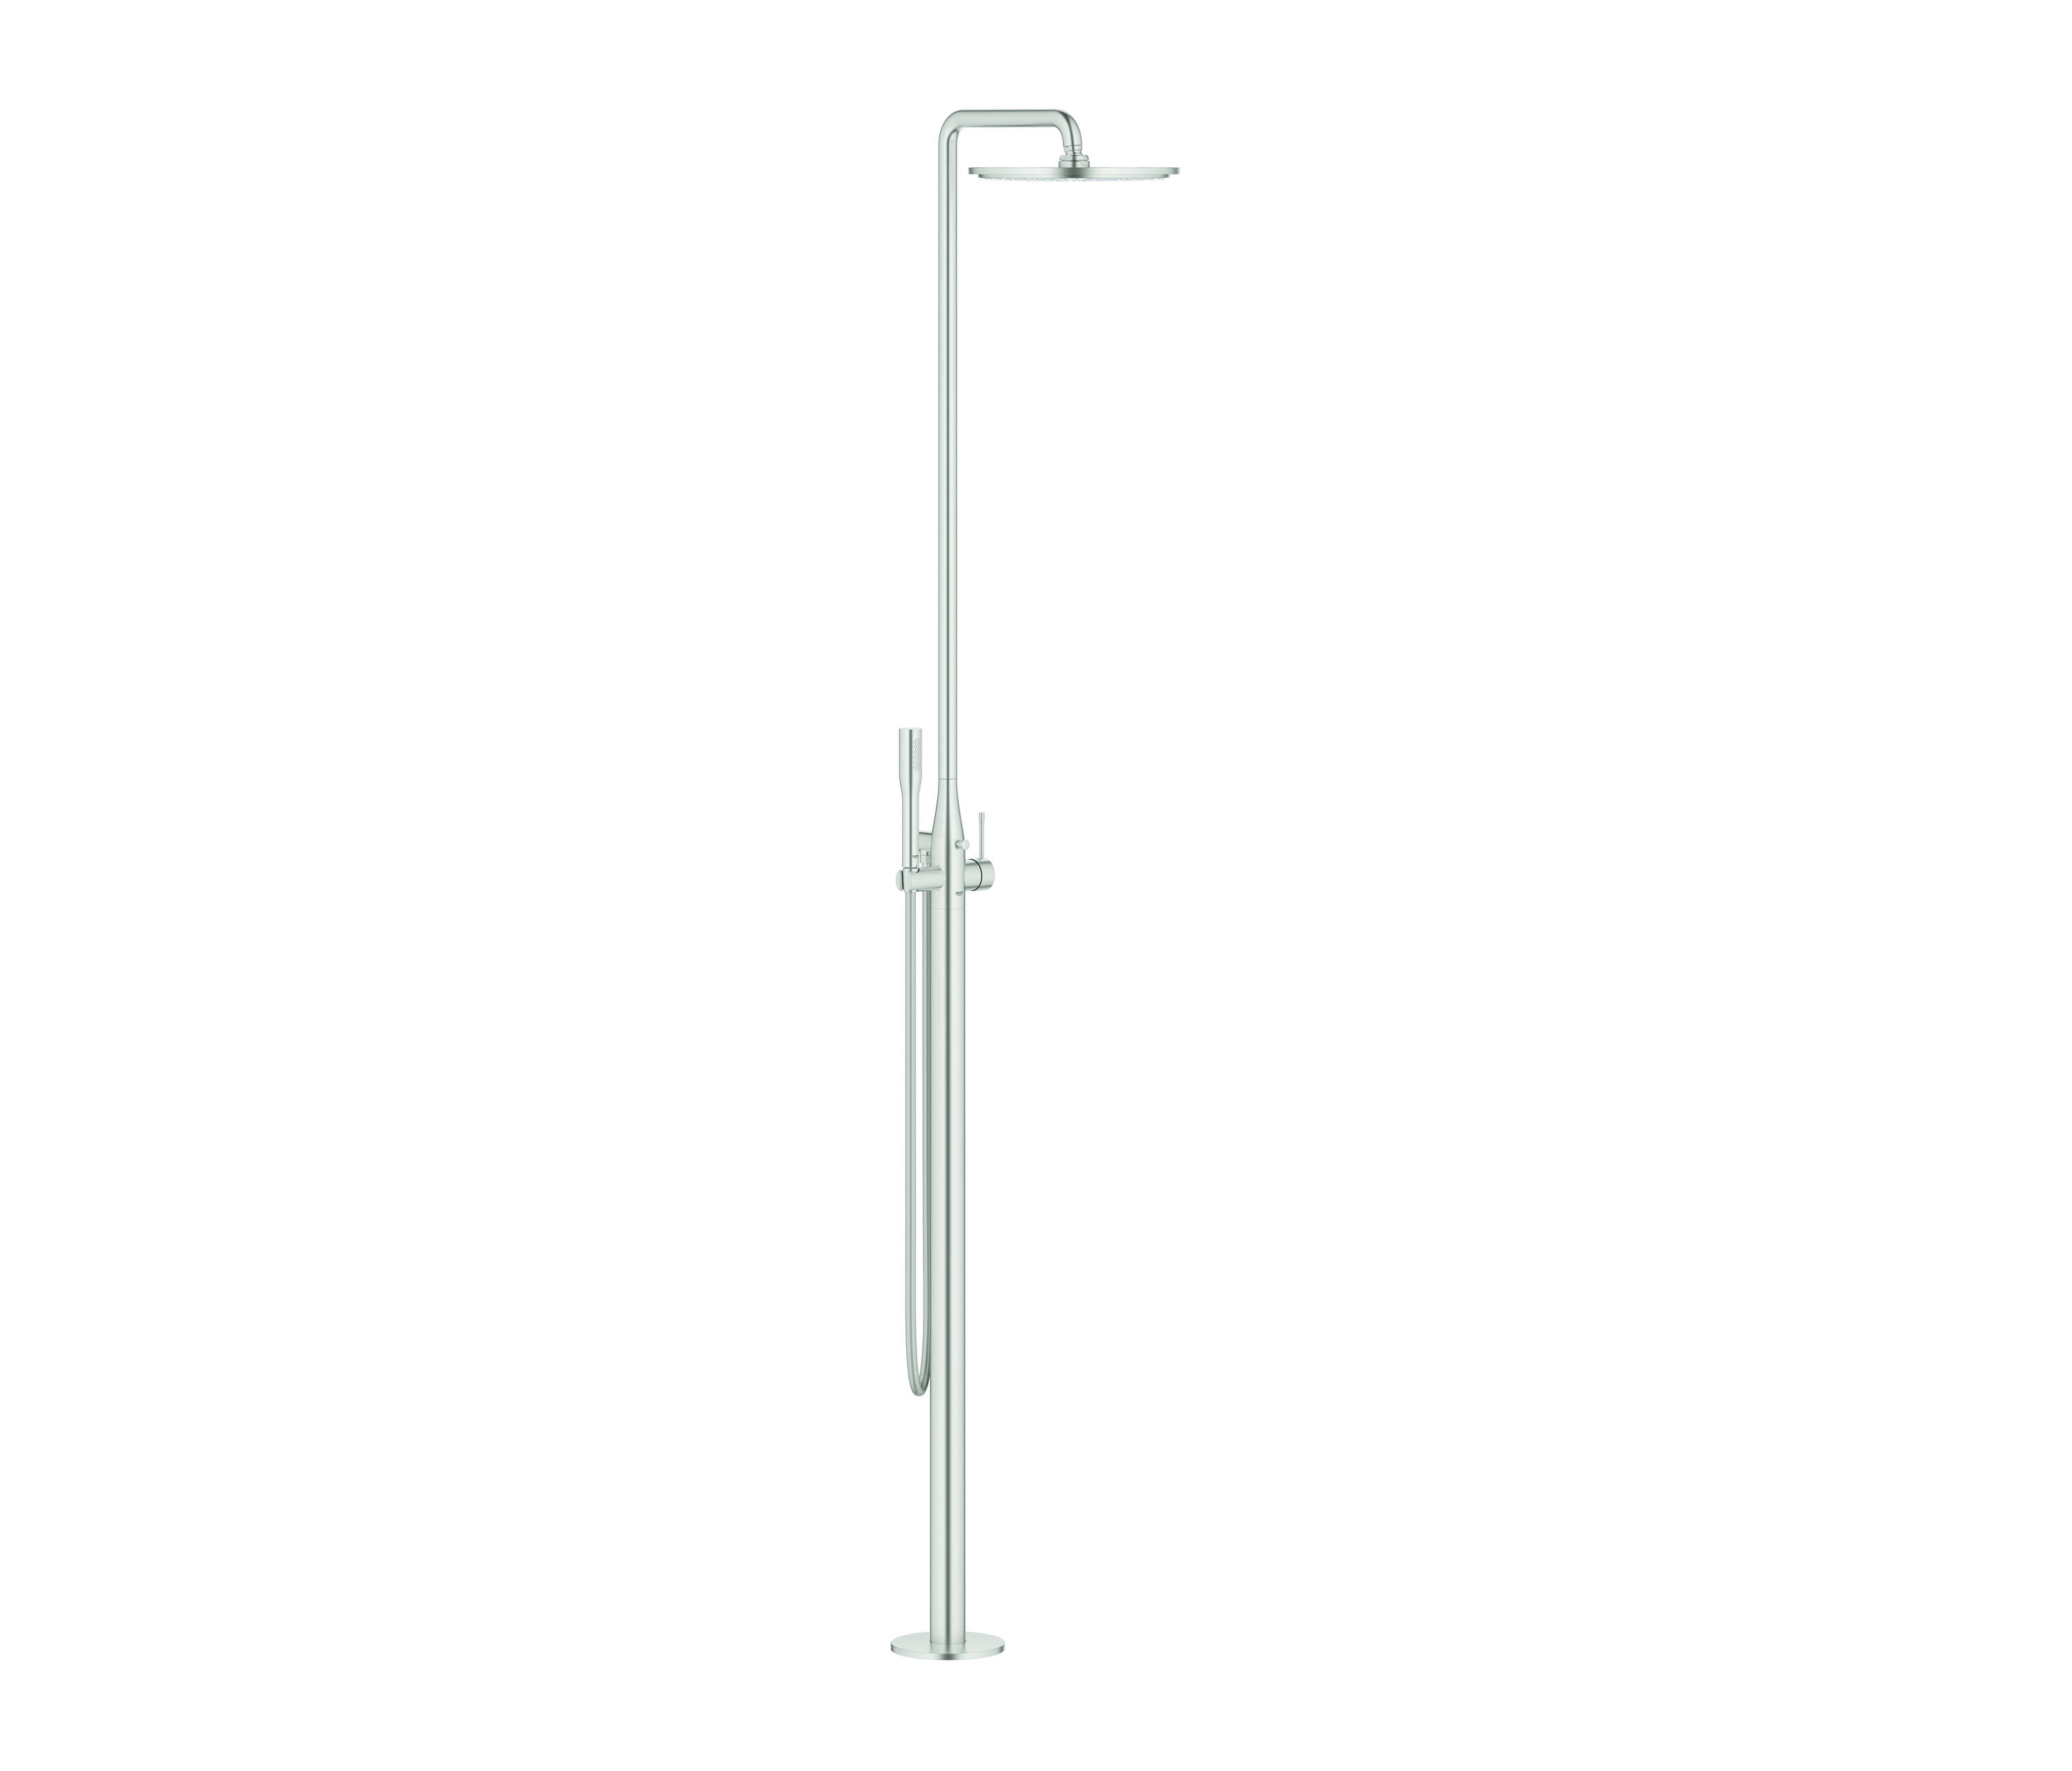 shower mixer grohe nujits com 2